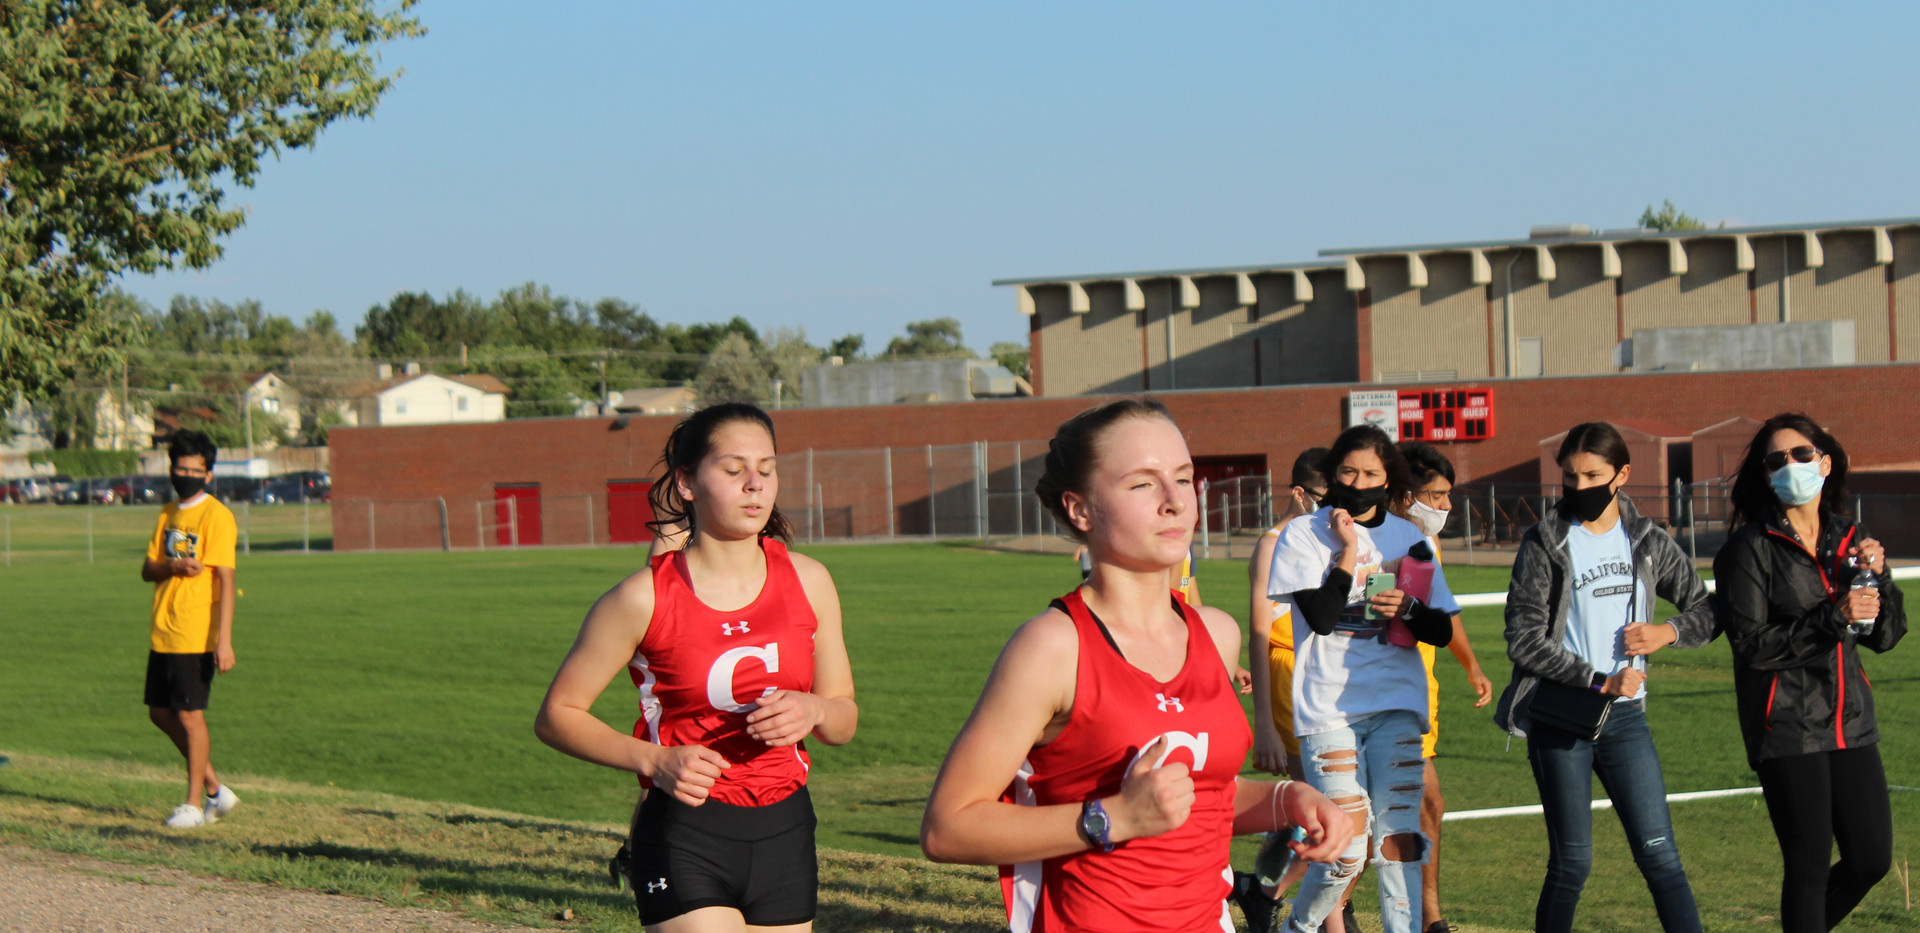 Senior, Claire Sandoval (left) and junio